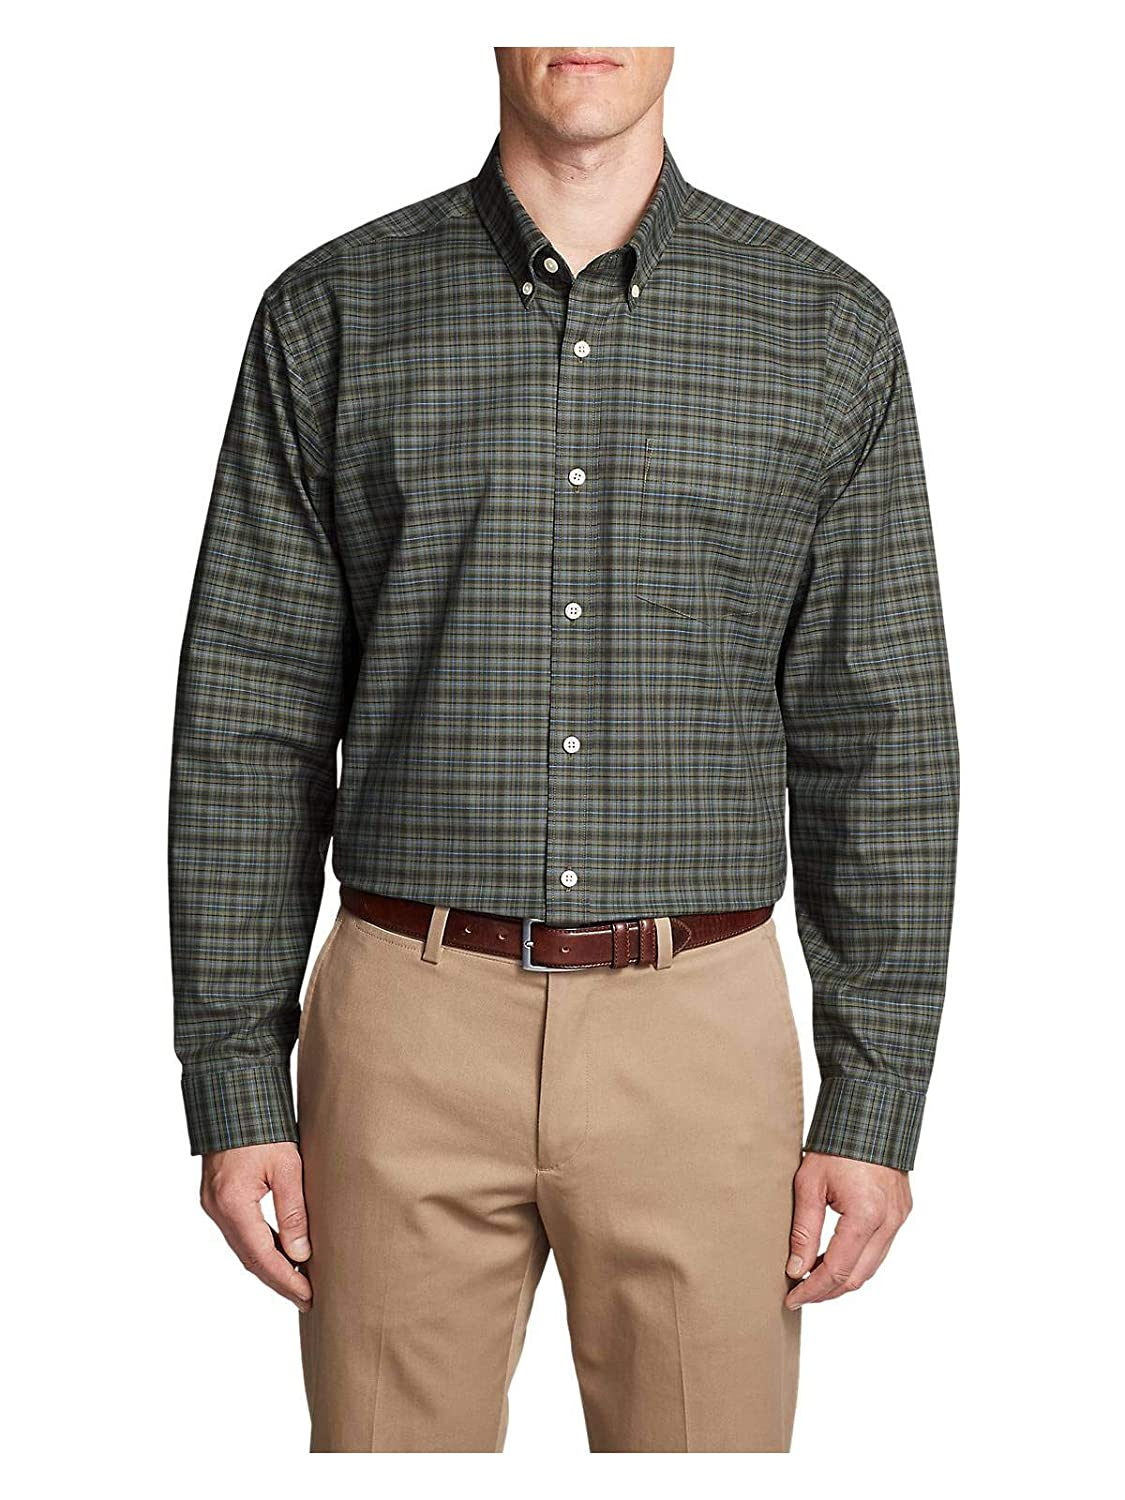 Eddie Bauer Men's Wrinkle-Free Relaxed Fit Oxford Cloth Shirt - Pattern 45074